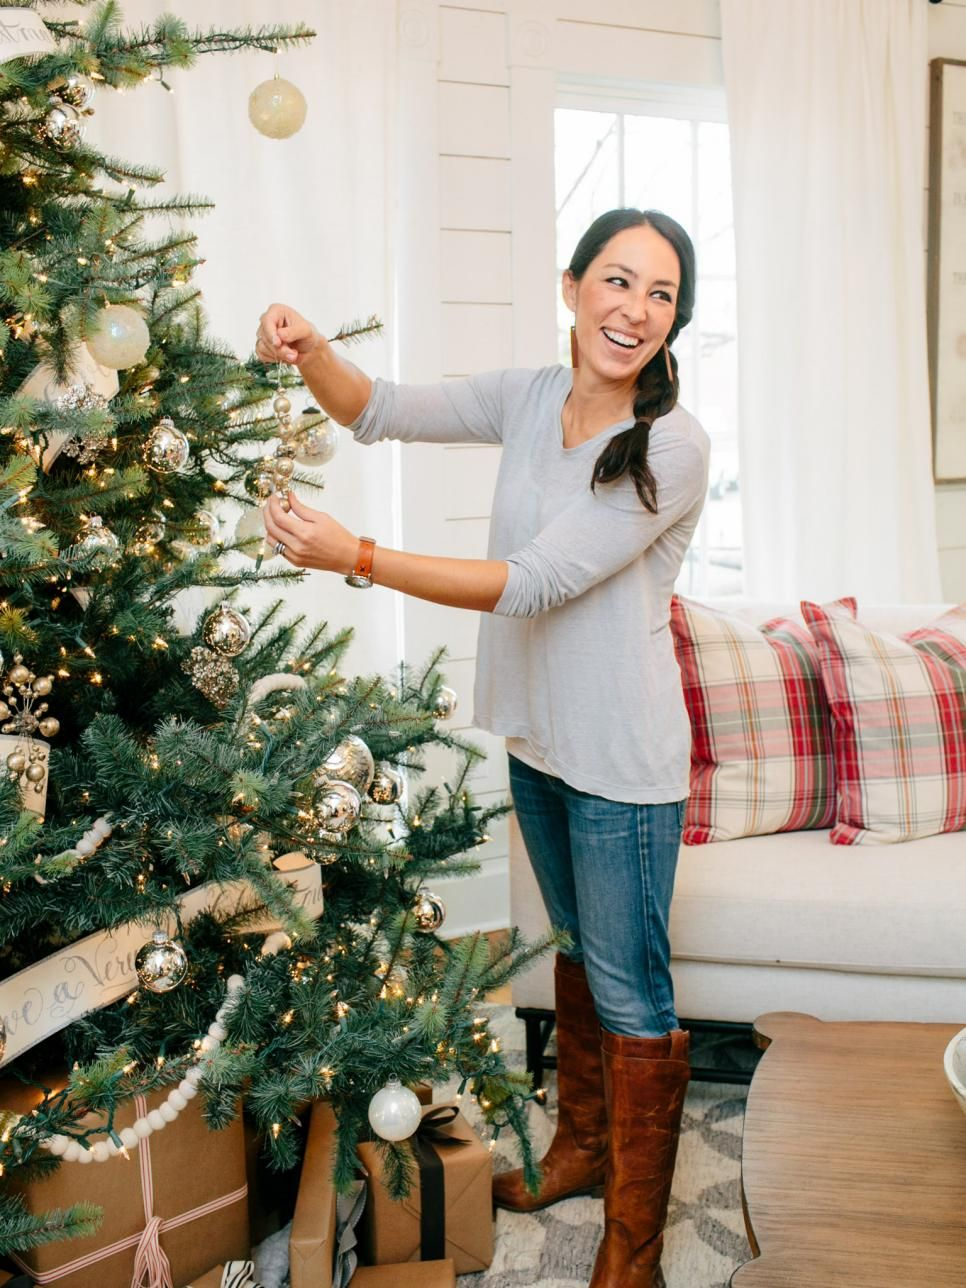 A Chip and Joanna Holiday Photo Album | Holidays, Album and ...